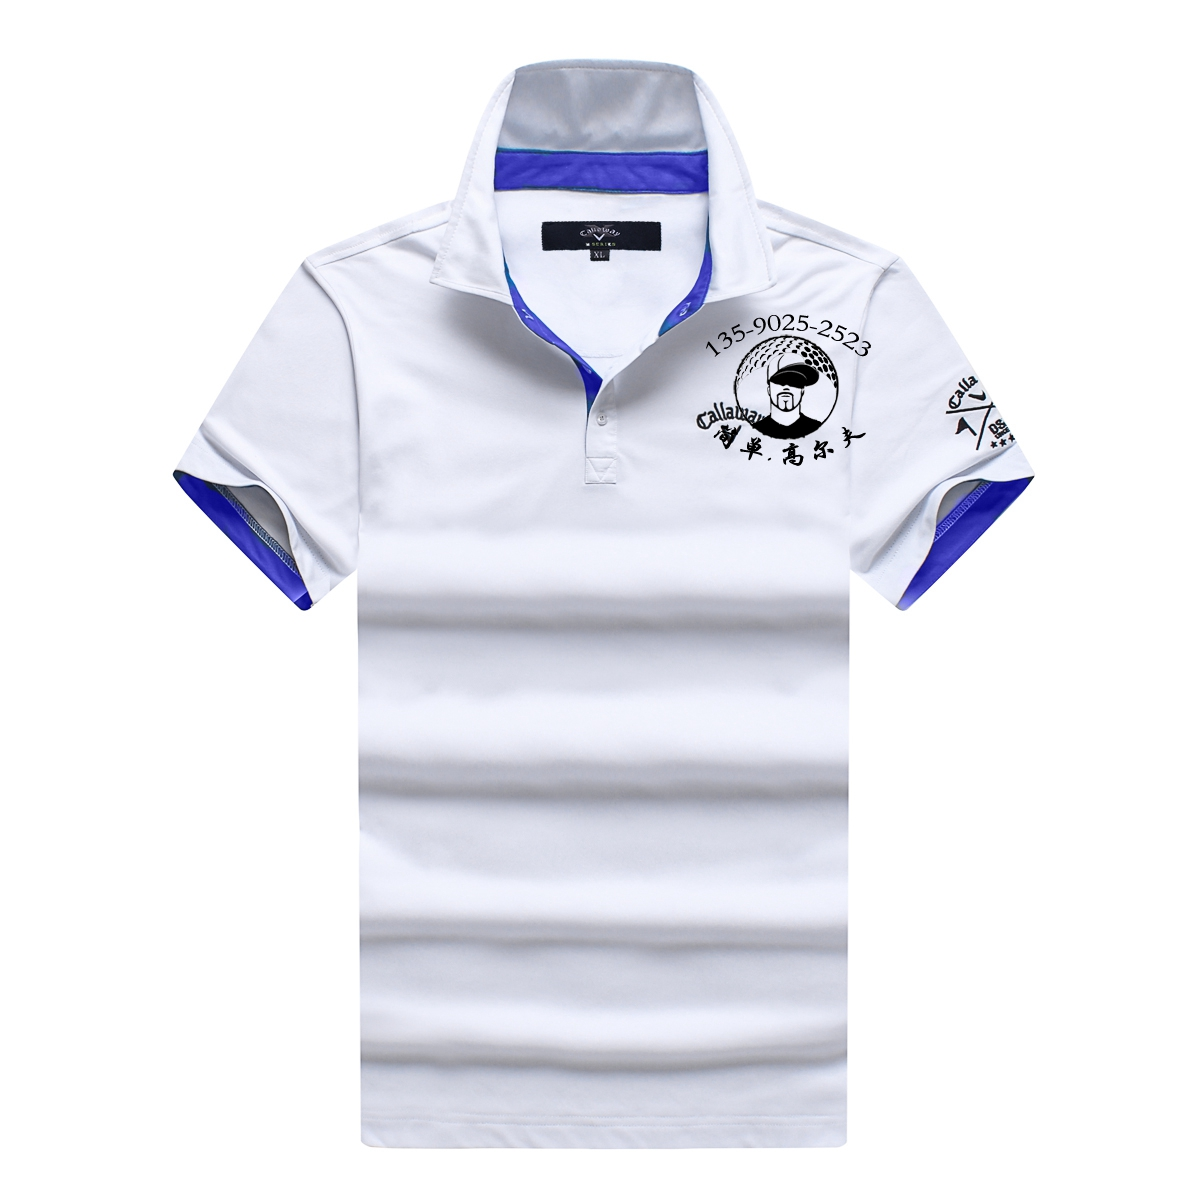 Golf clothes brands images for Name brand golf shirts